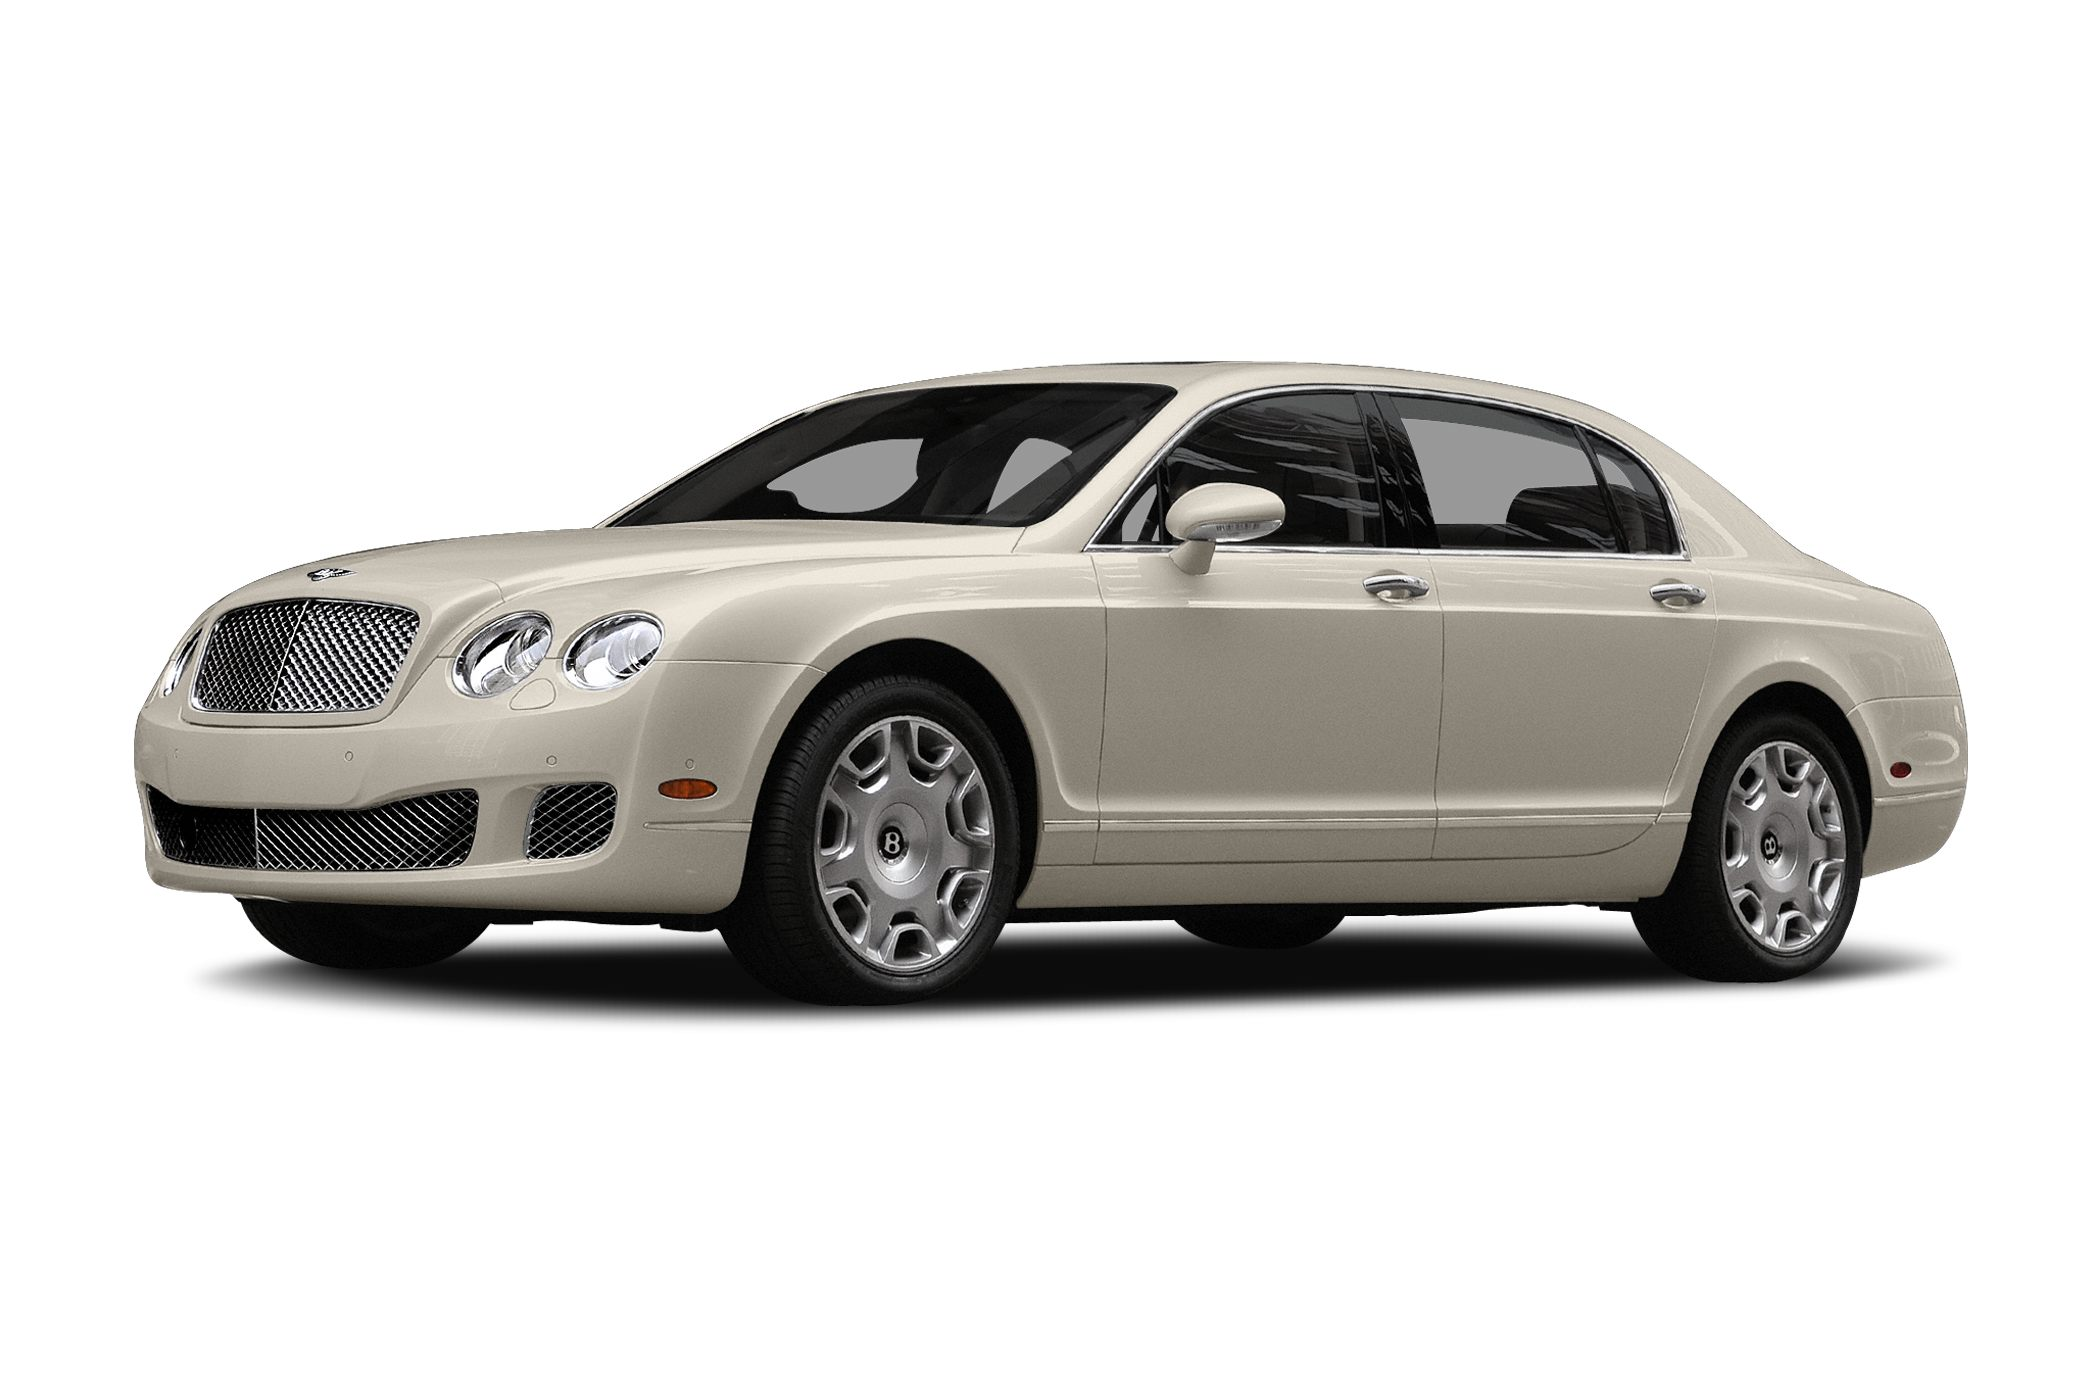 2010 Bentley Continental Flying Spur  60 W12 TWIN TURBO CARFAX CERTIFIED AWD Low Miles clean NON